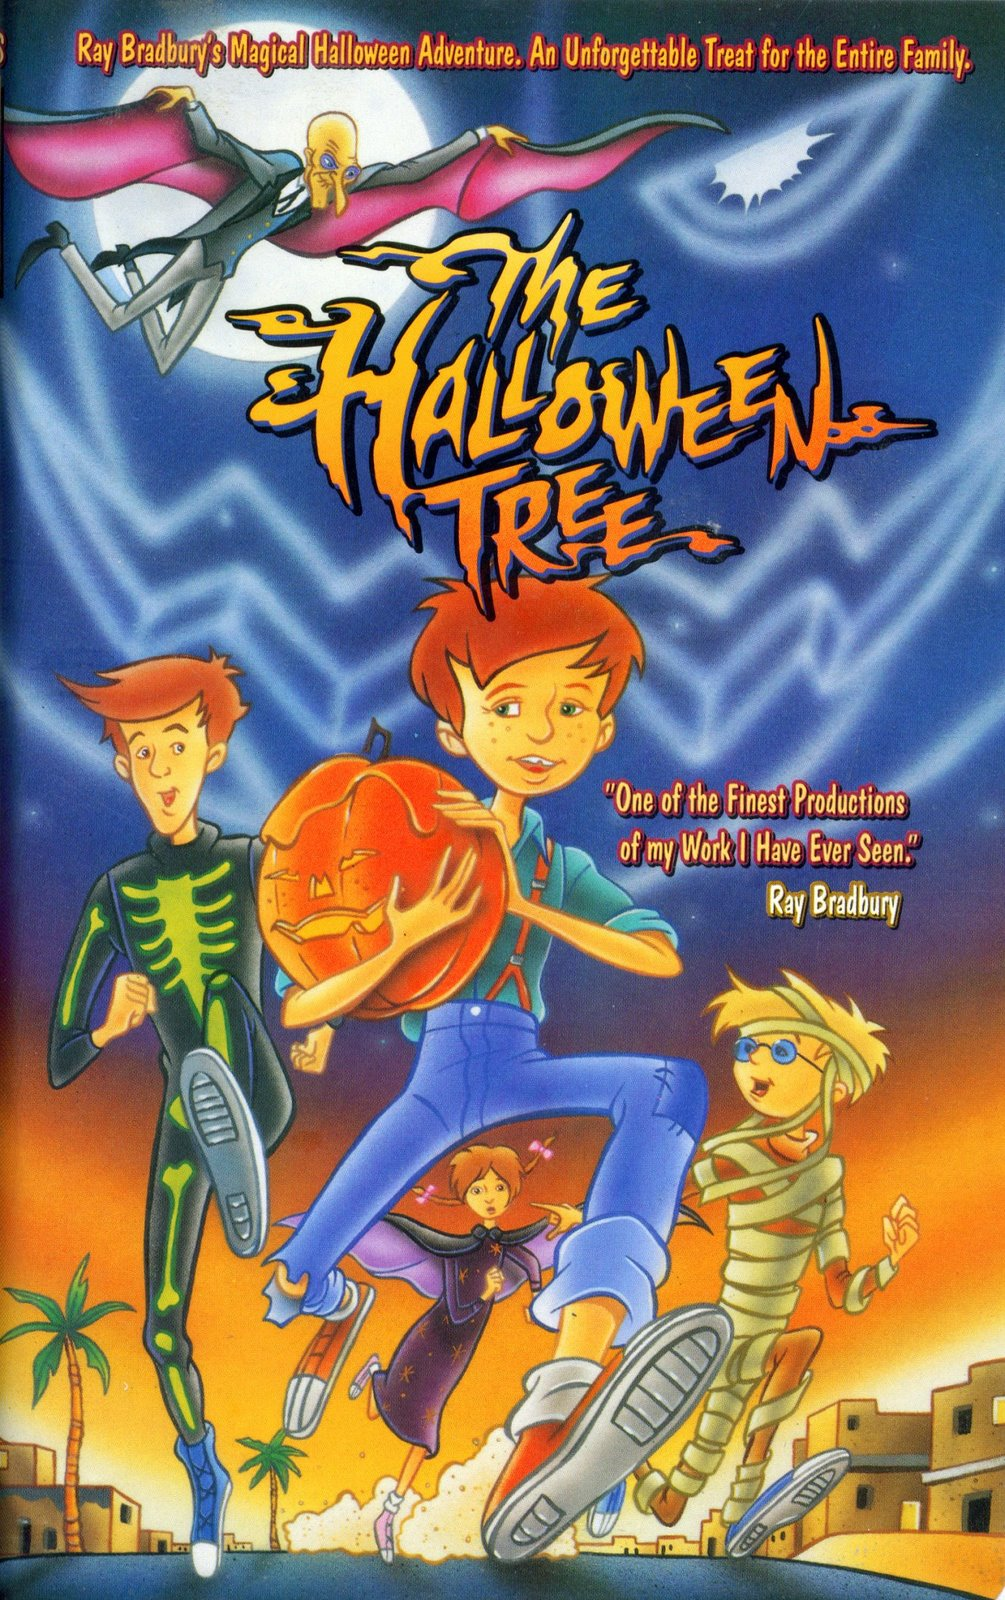 Mr. Movie: Animated Halloween Movies and Specials (My Top 13 ...